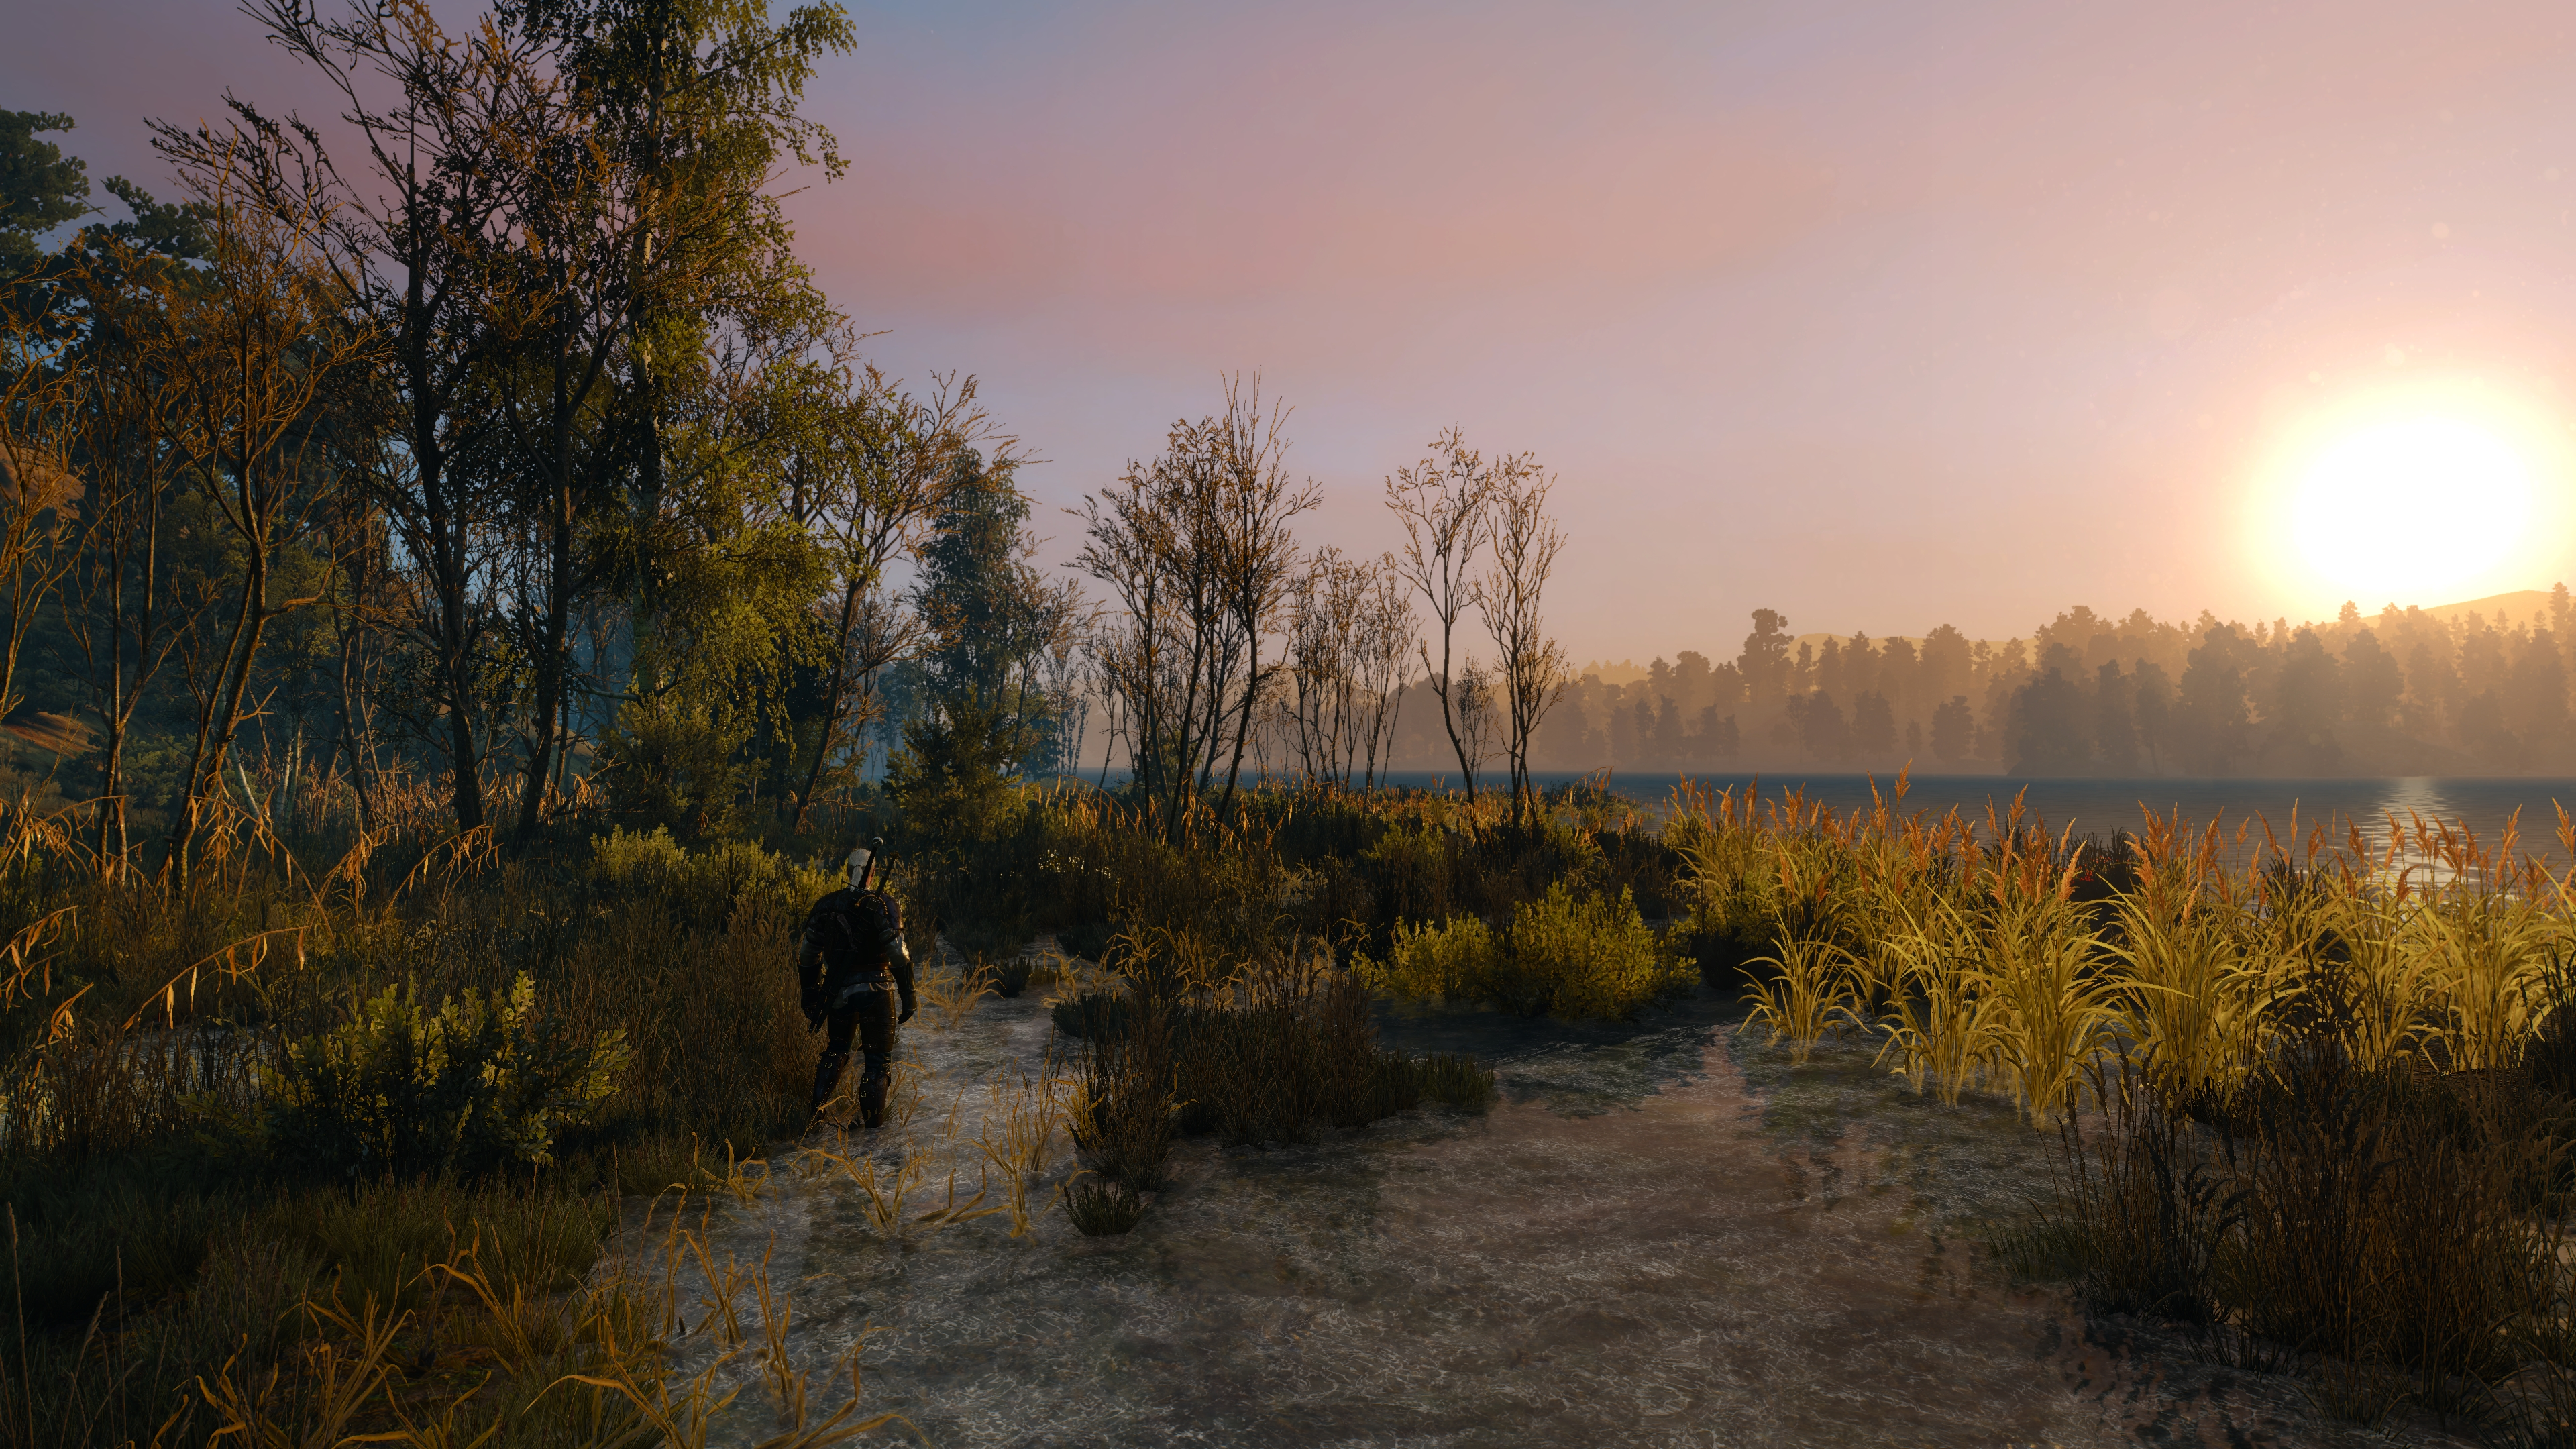 The Witcher 3 Super-Resolution 2017.12.21 - 00.19.08.21.jpg - Witcher 3: Wild Hunt, the